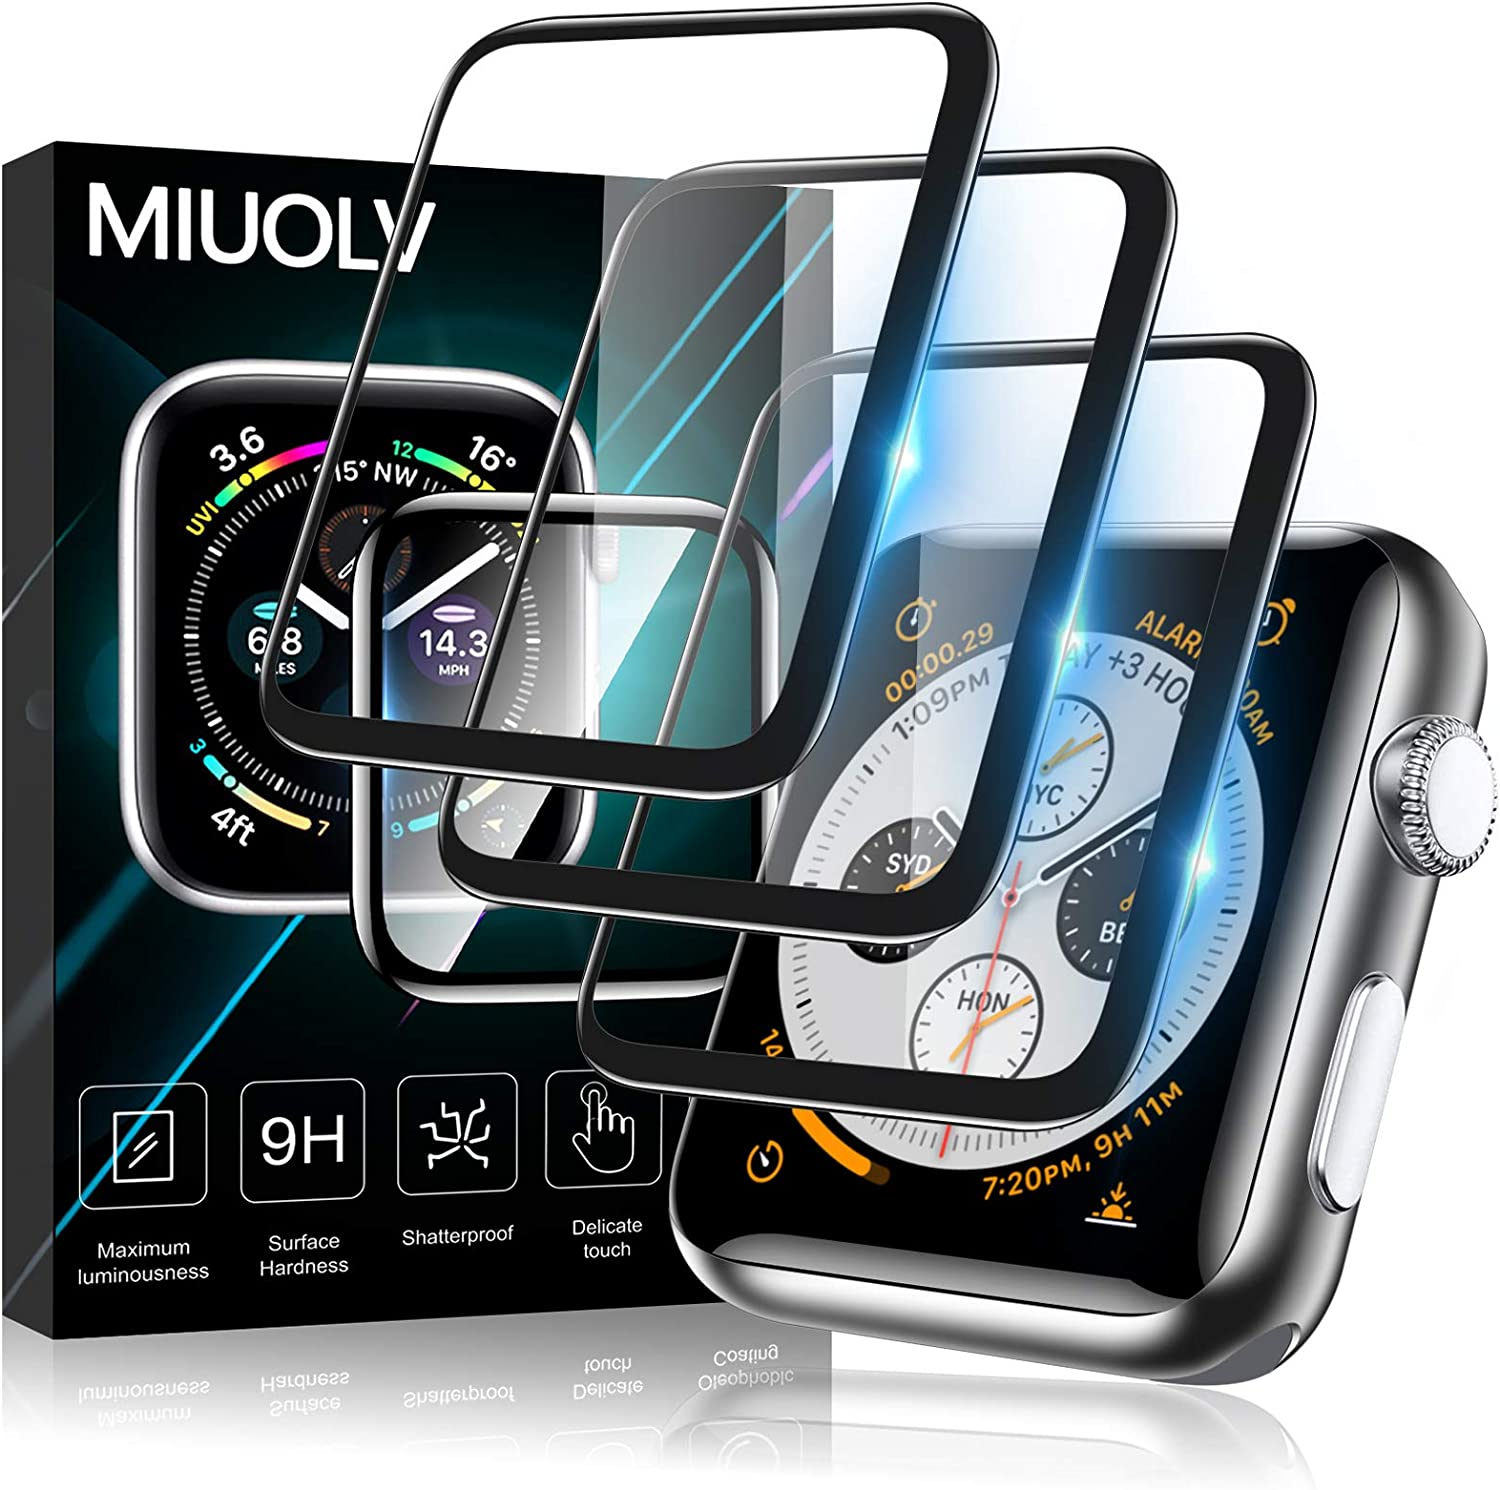 [3 Pack] MIUOLV Screen Protector for Apple Watch 44mm Series 4/5/6/SE Full Coverage Bubble-Free Scratch-resistant Anti-Fingerprint HD Screen Transparent Protector-Black for Apple Watch 44mm (44mm)